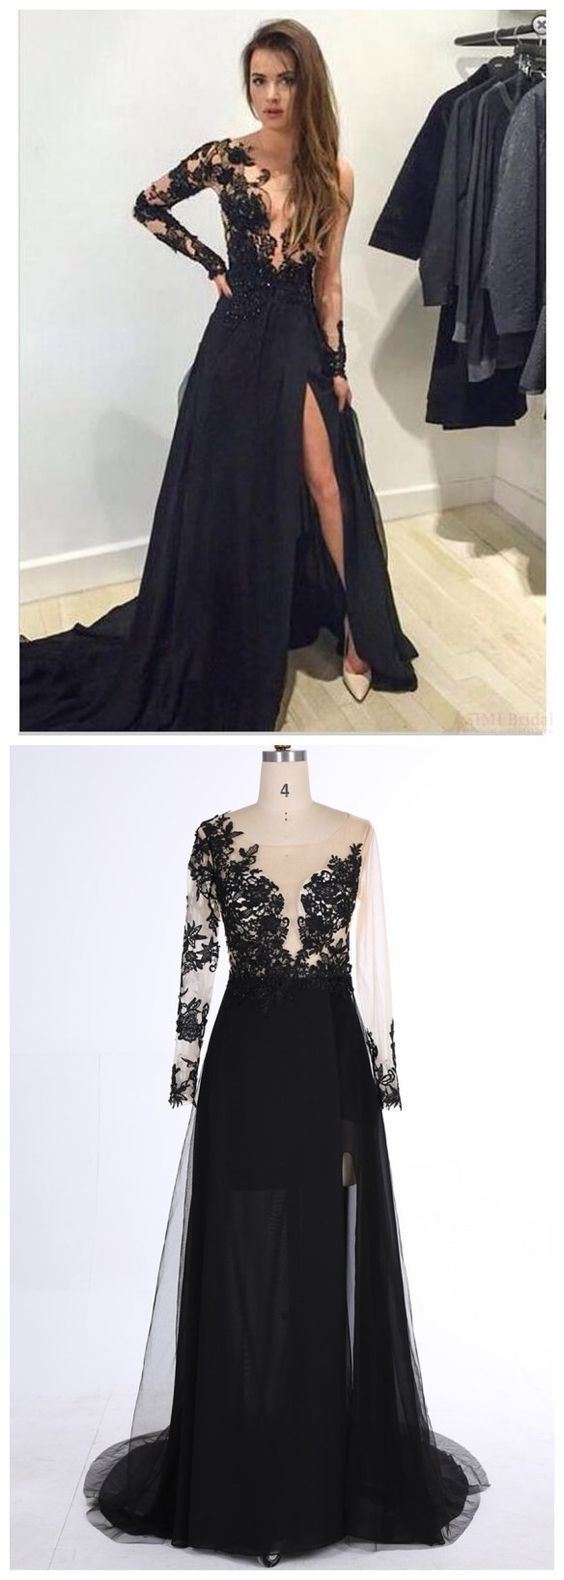 Elegant black lace appliques prom dressone shoulder evening dressa